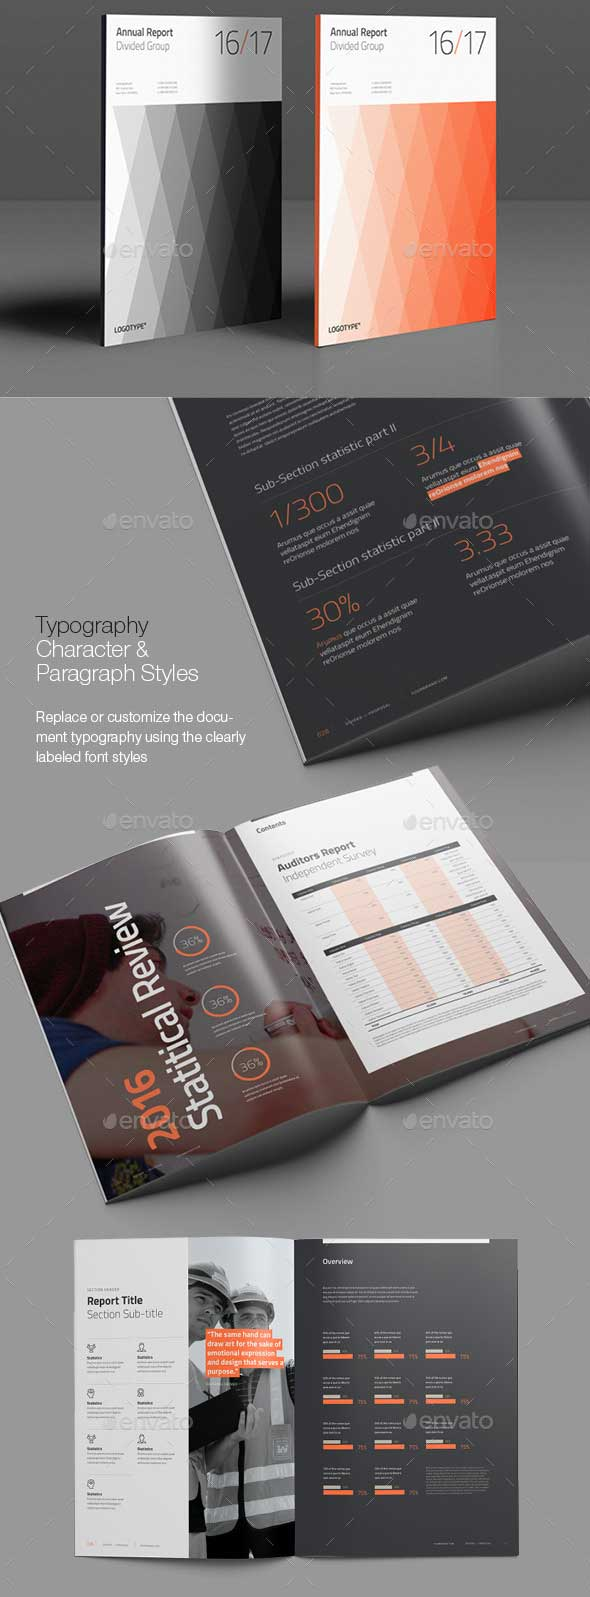 divided-annual-report-template